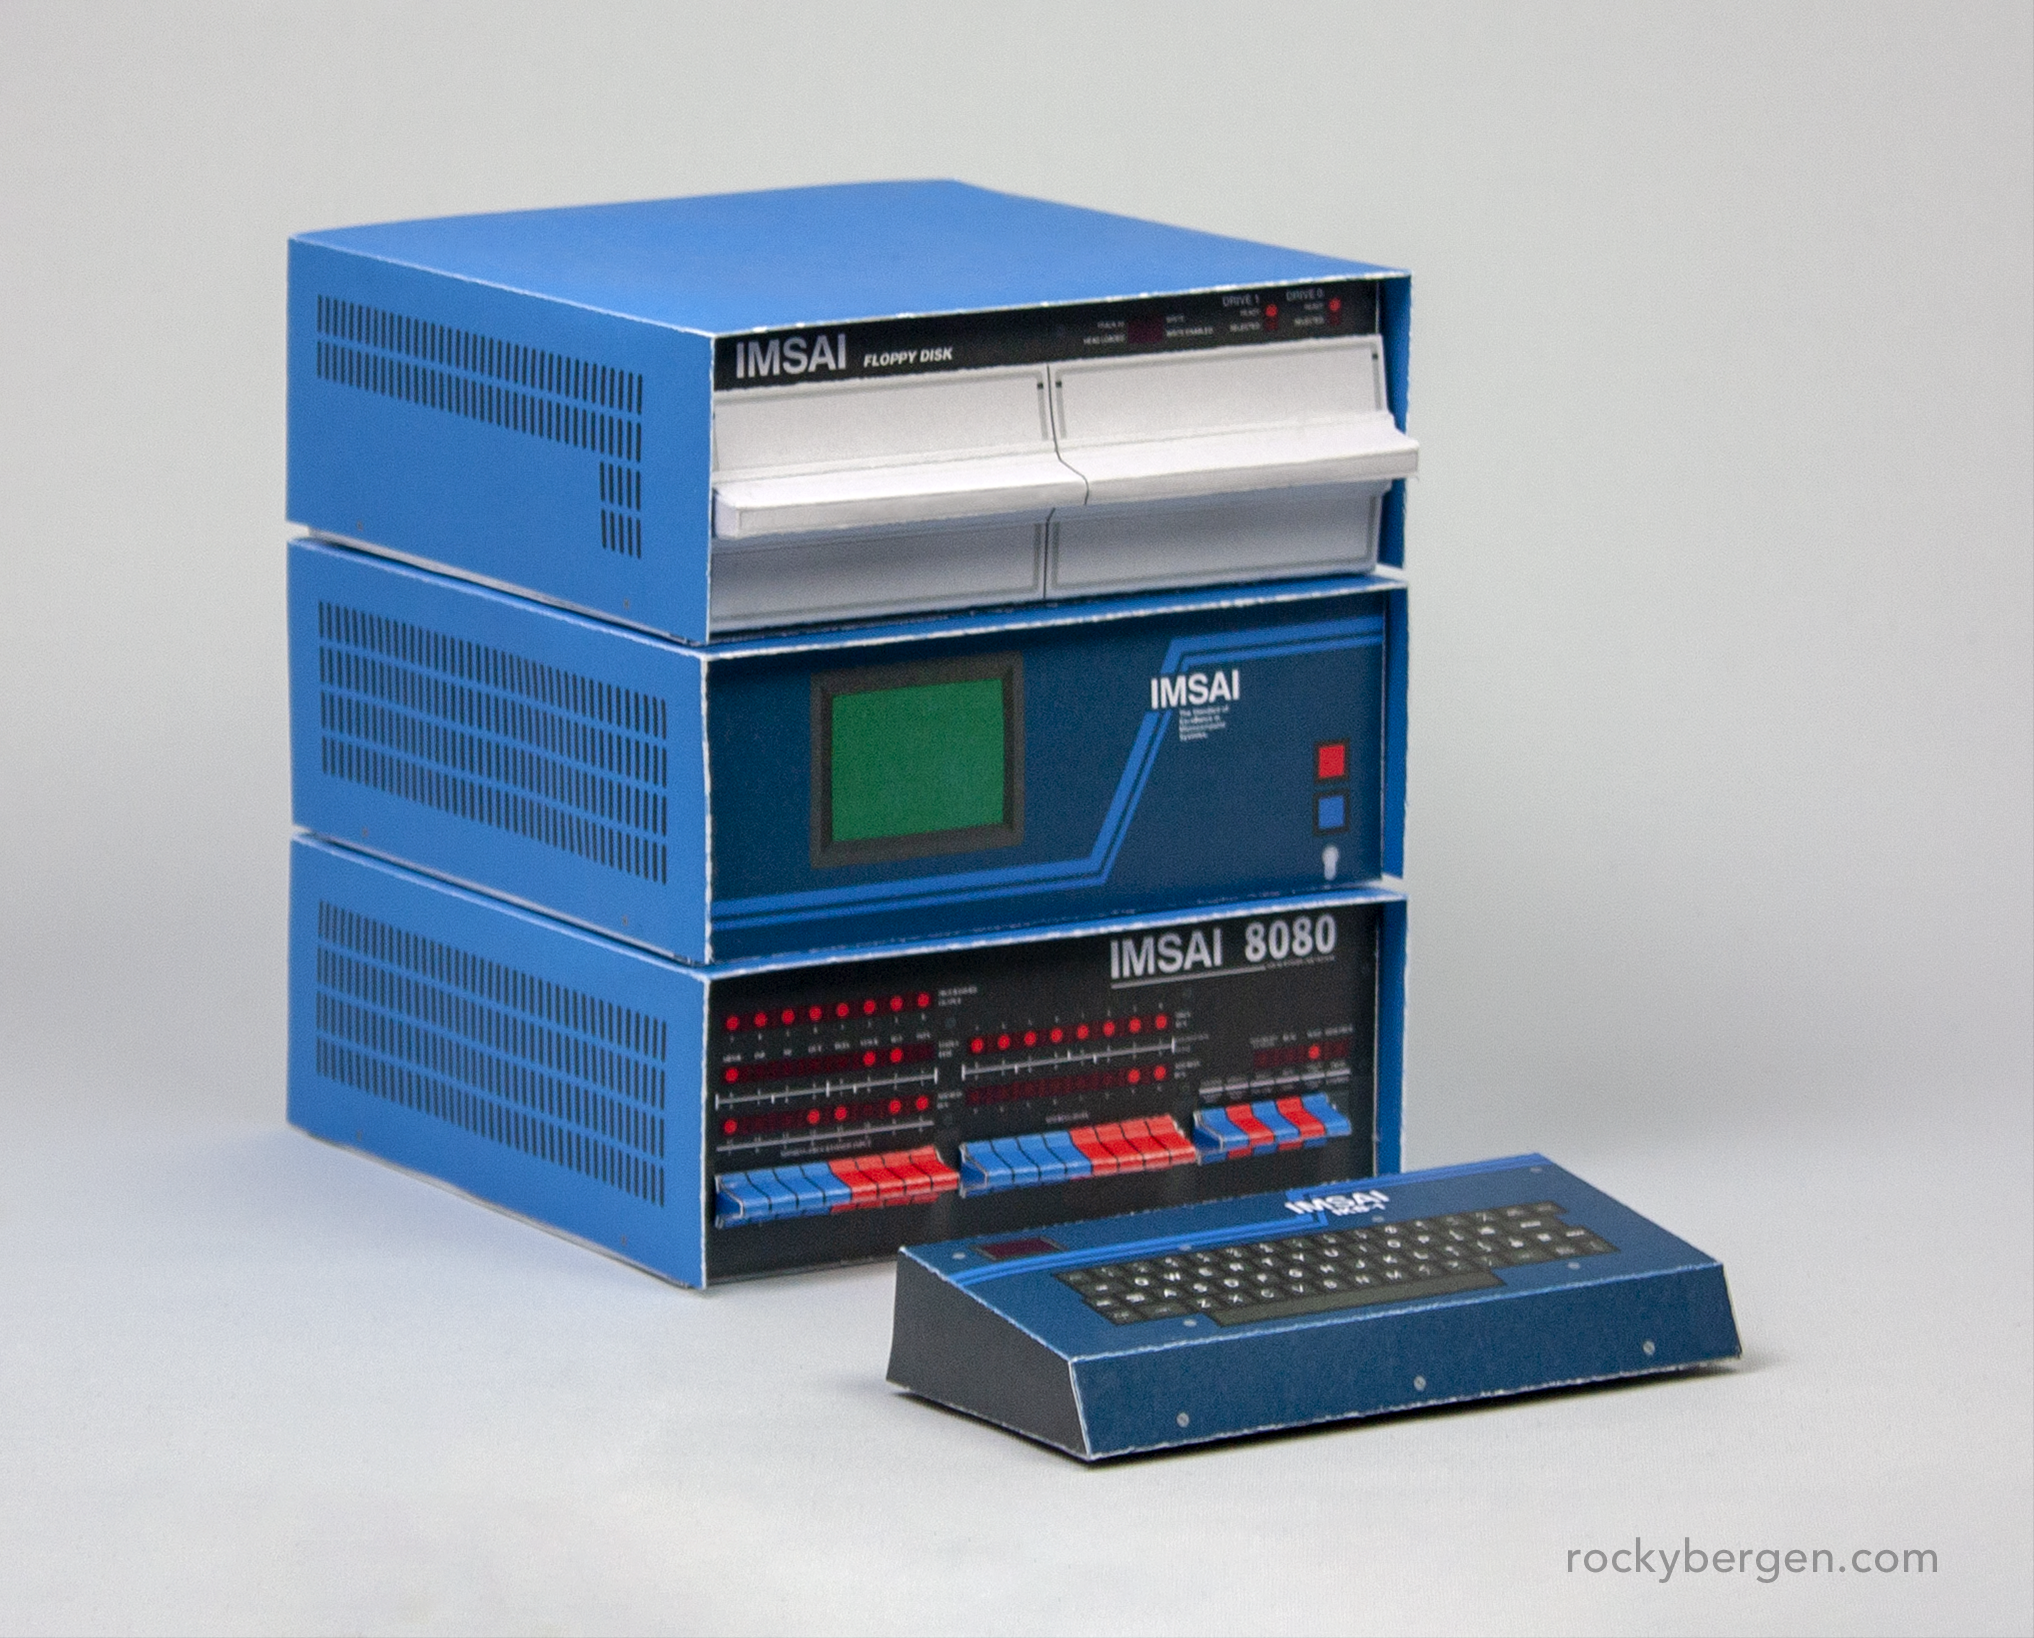 The IMSAI 8080 was part of the PCS-80 System and various modules and cards could be added to expand functionality.